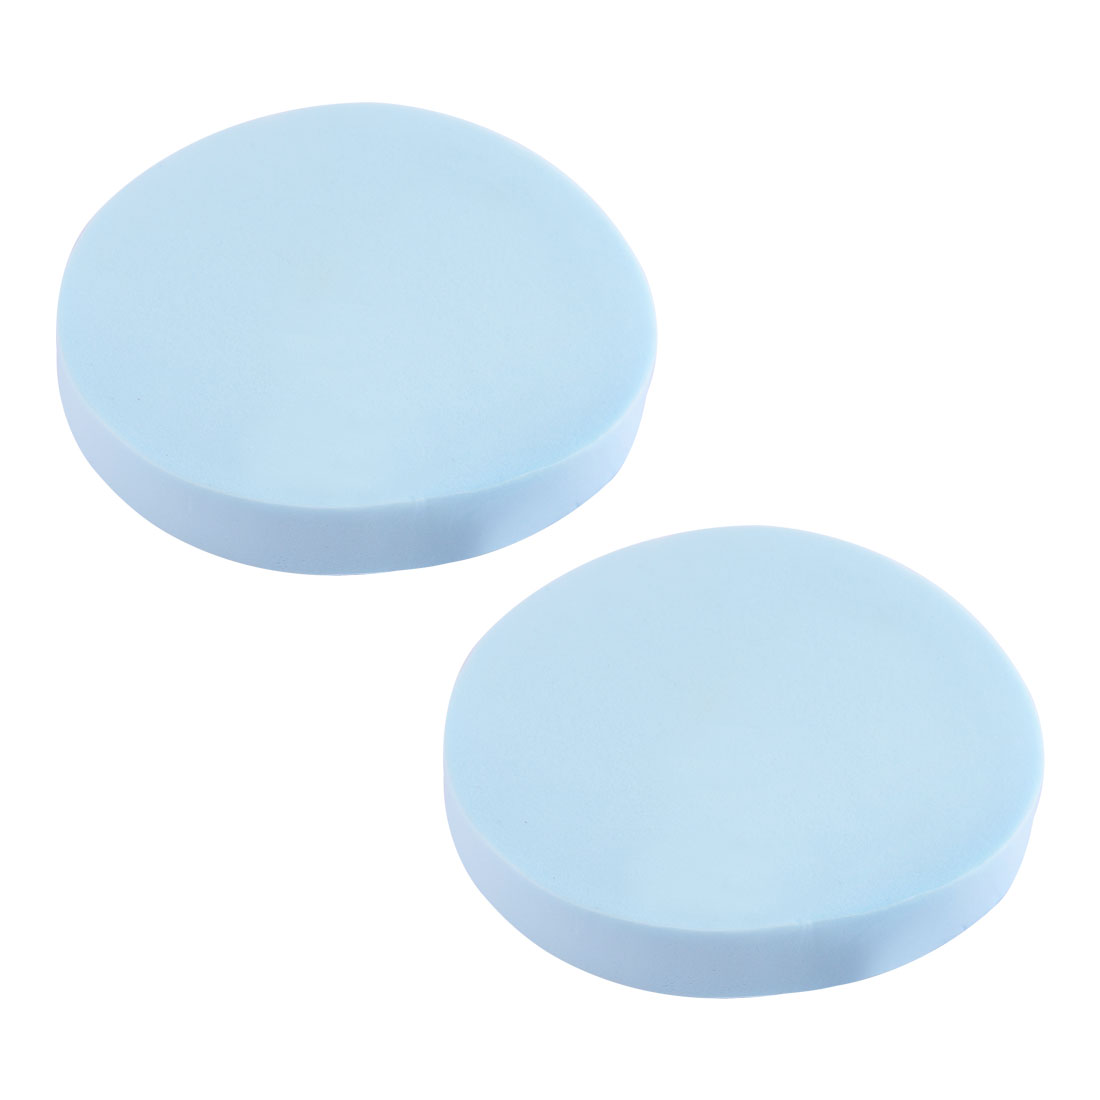 Lady Round Shaped Cosmetic Beauty Tool Facial Cleaning Sponge Blue 2 Pcs